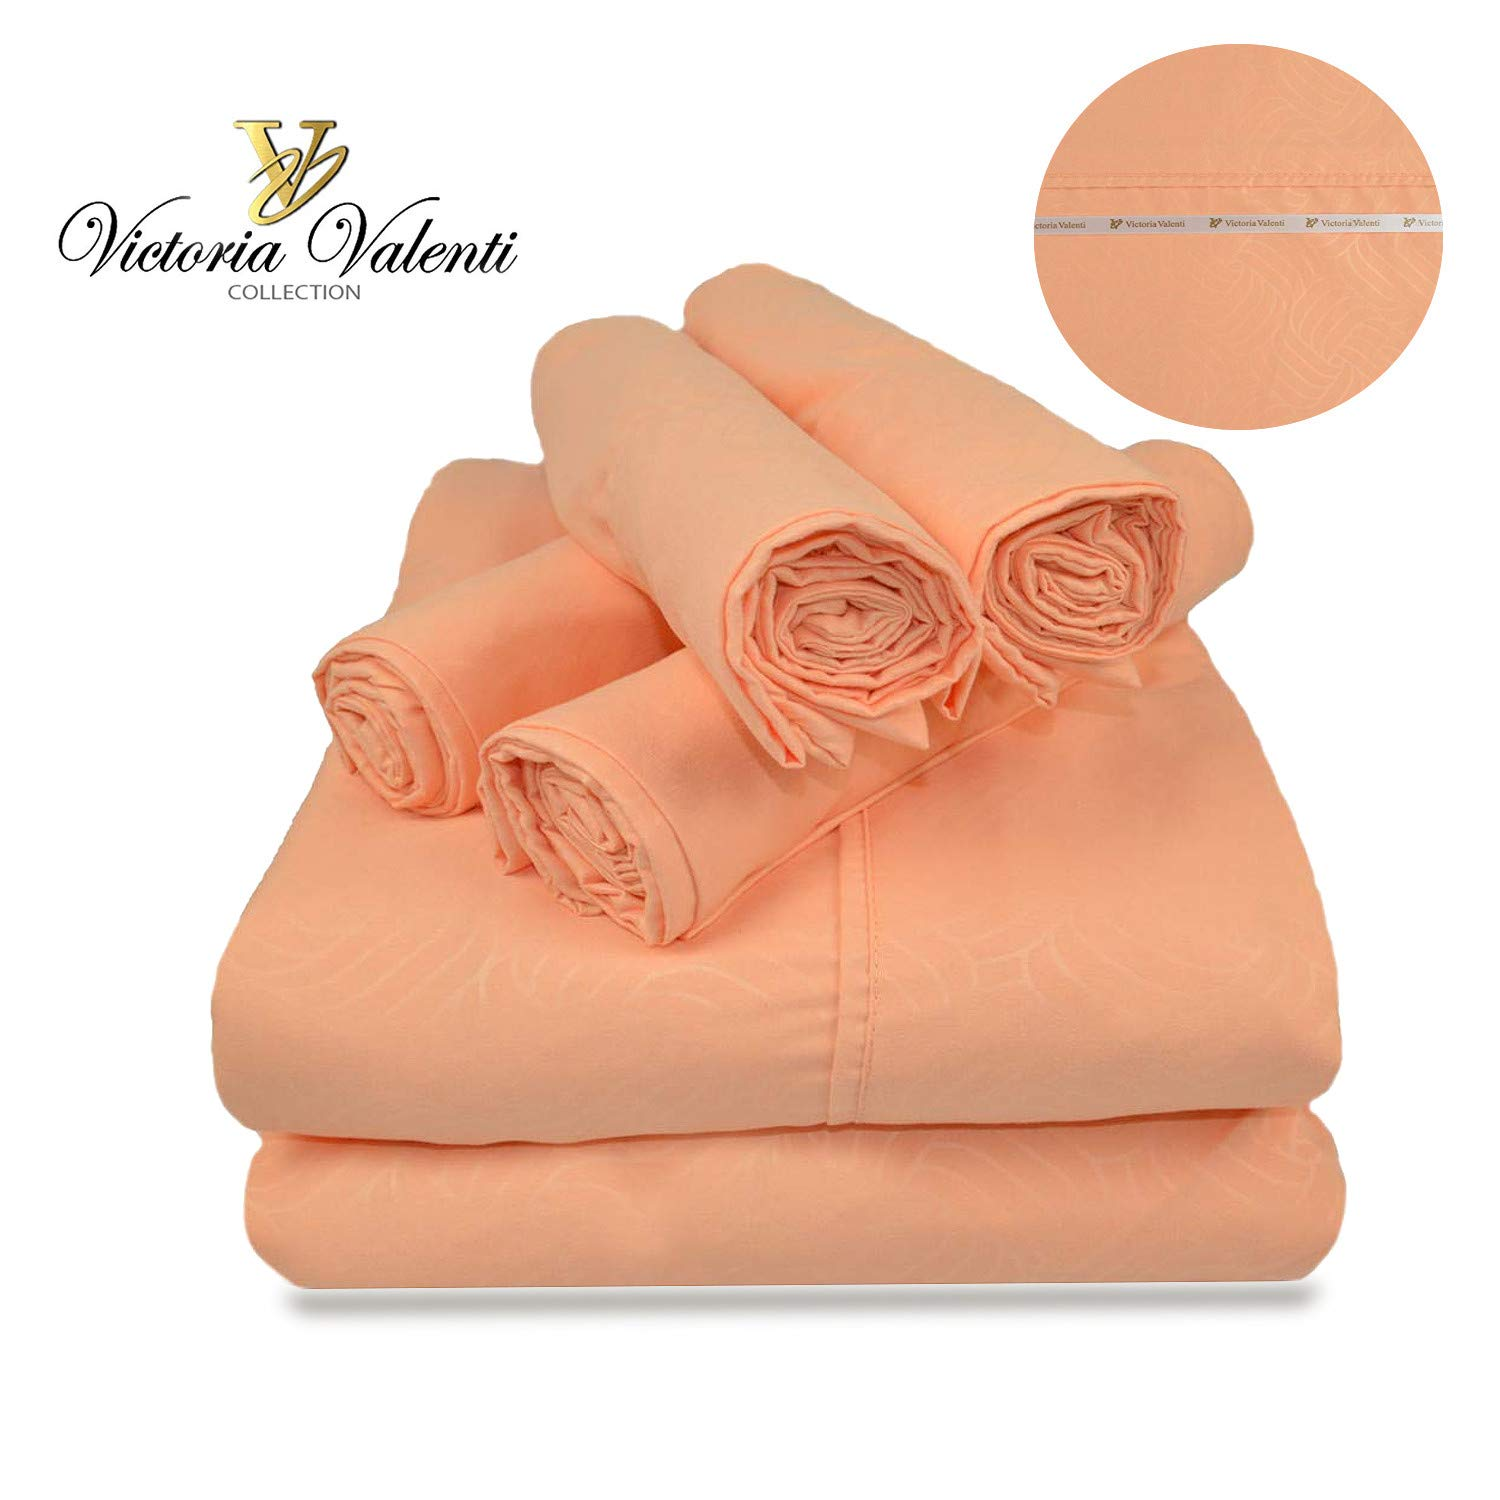 Victoria Valenti Embossed Sheet Set with 4 Pillow Cases, Double Brushed and Ultra Soft with Deep Pockets for Extra Deep Mattress, Microfiber, Hypoallergenic Full Coral